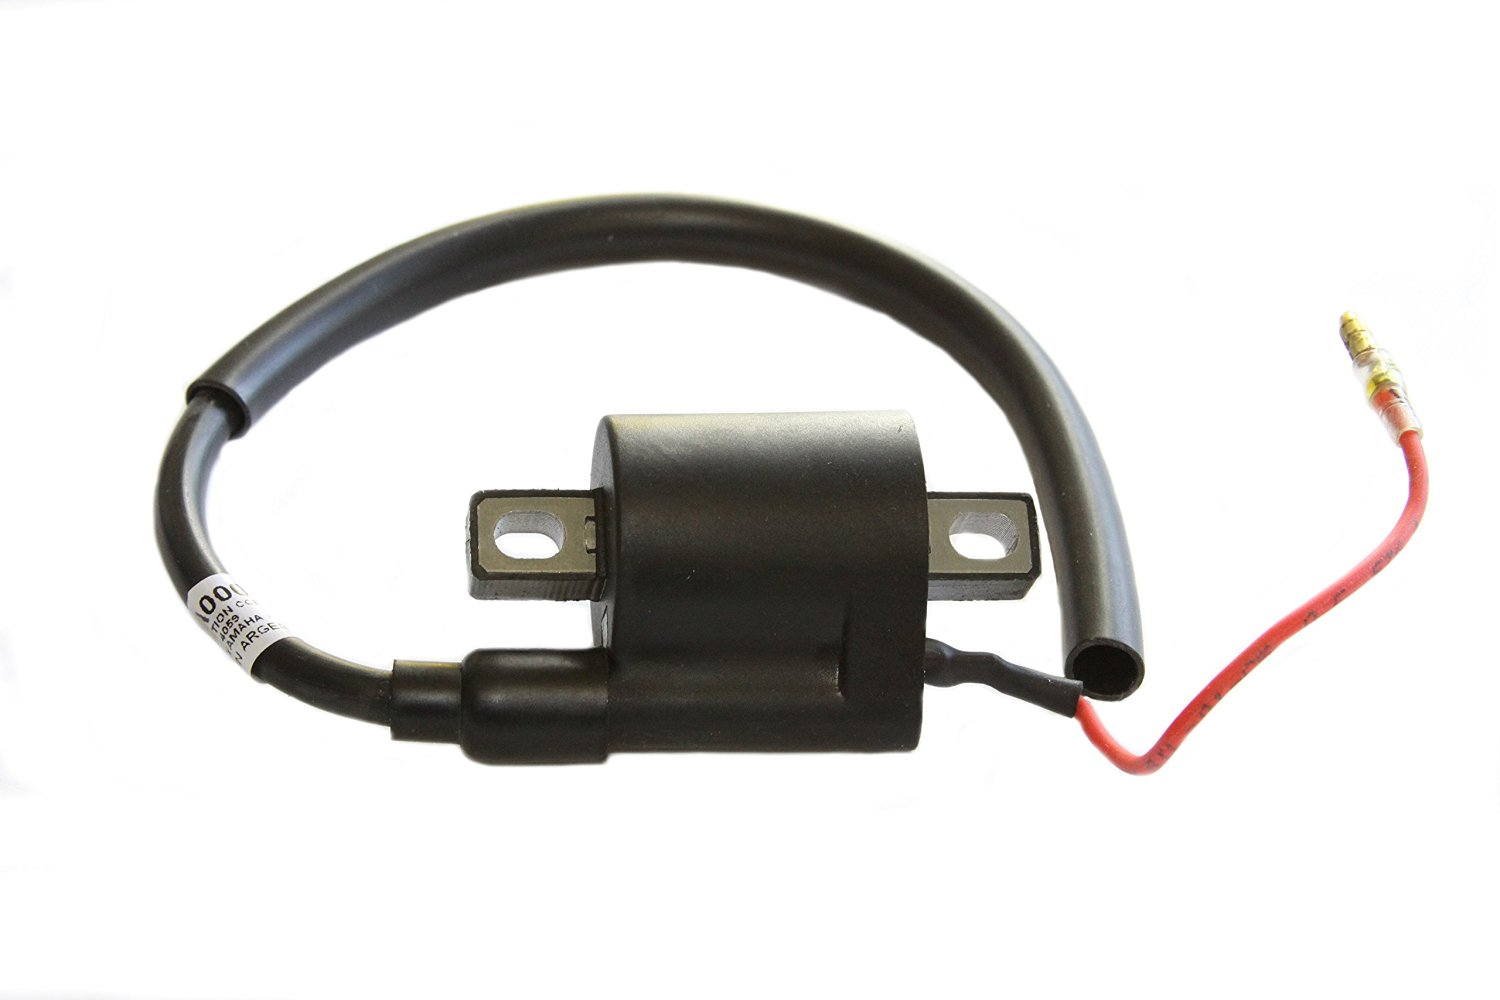 Buy New Ignition Coil For Yamaha Replaces 3sr 82310 10 00 Pw80 95 Pw50 Wiring